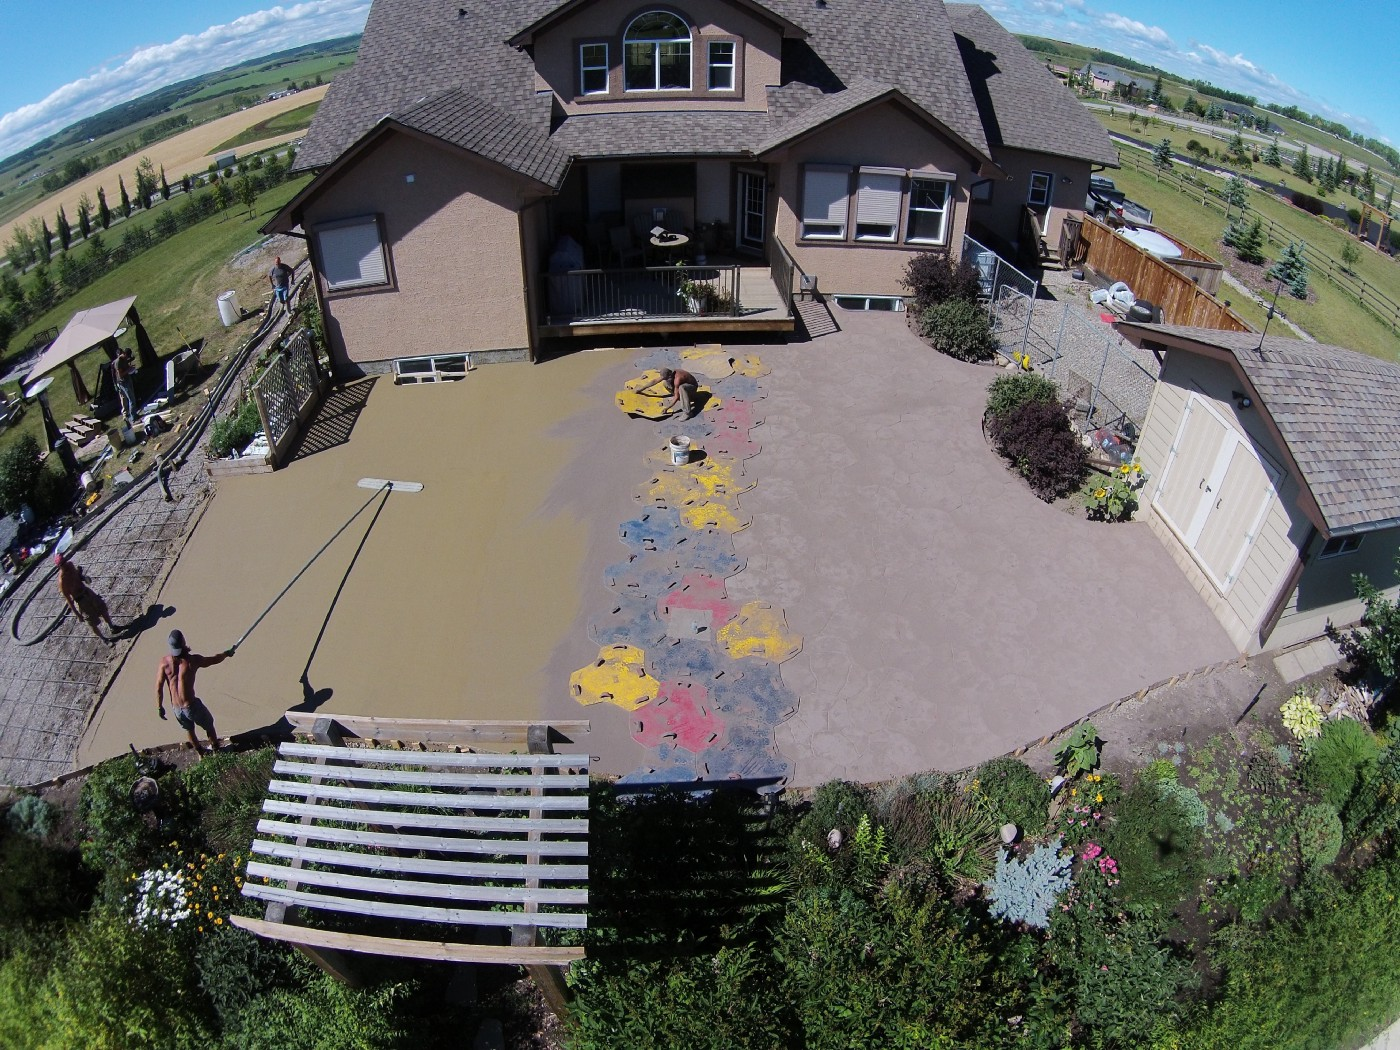 Stamped concrete patio being finished in Calgary. Workers are in the middle of placing fresh concrete and stamping a pattern in it while it's still wet.